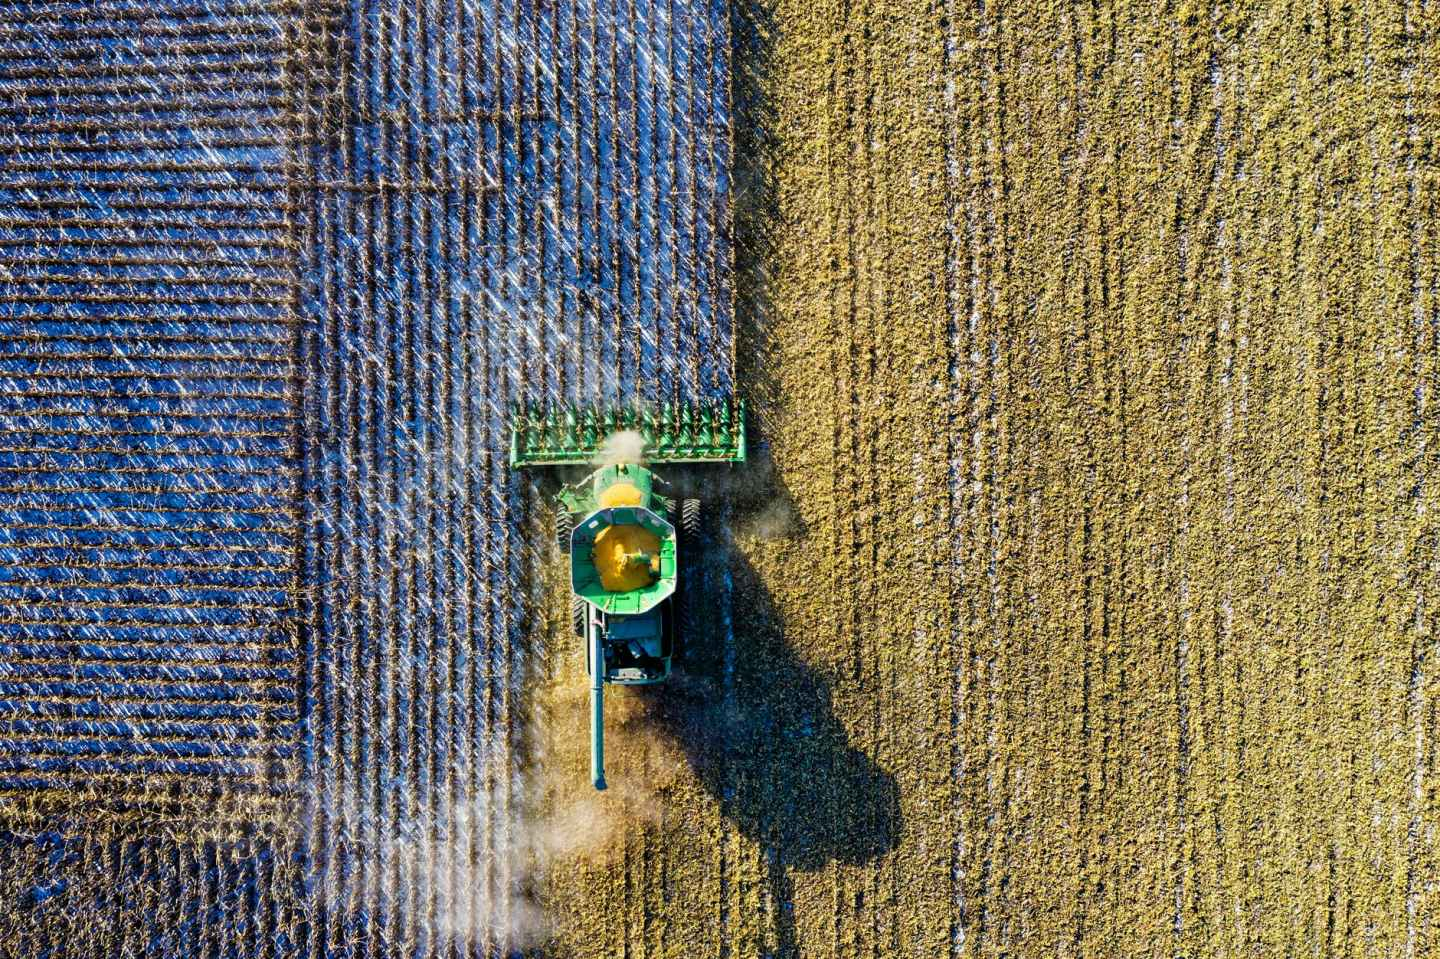 aerial shot of green milling tractor - struggling farmers